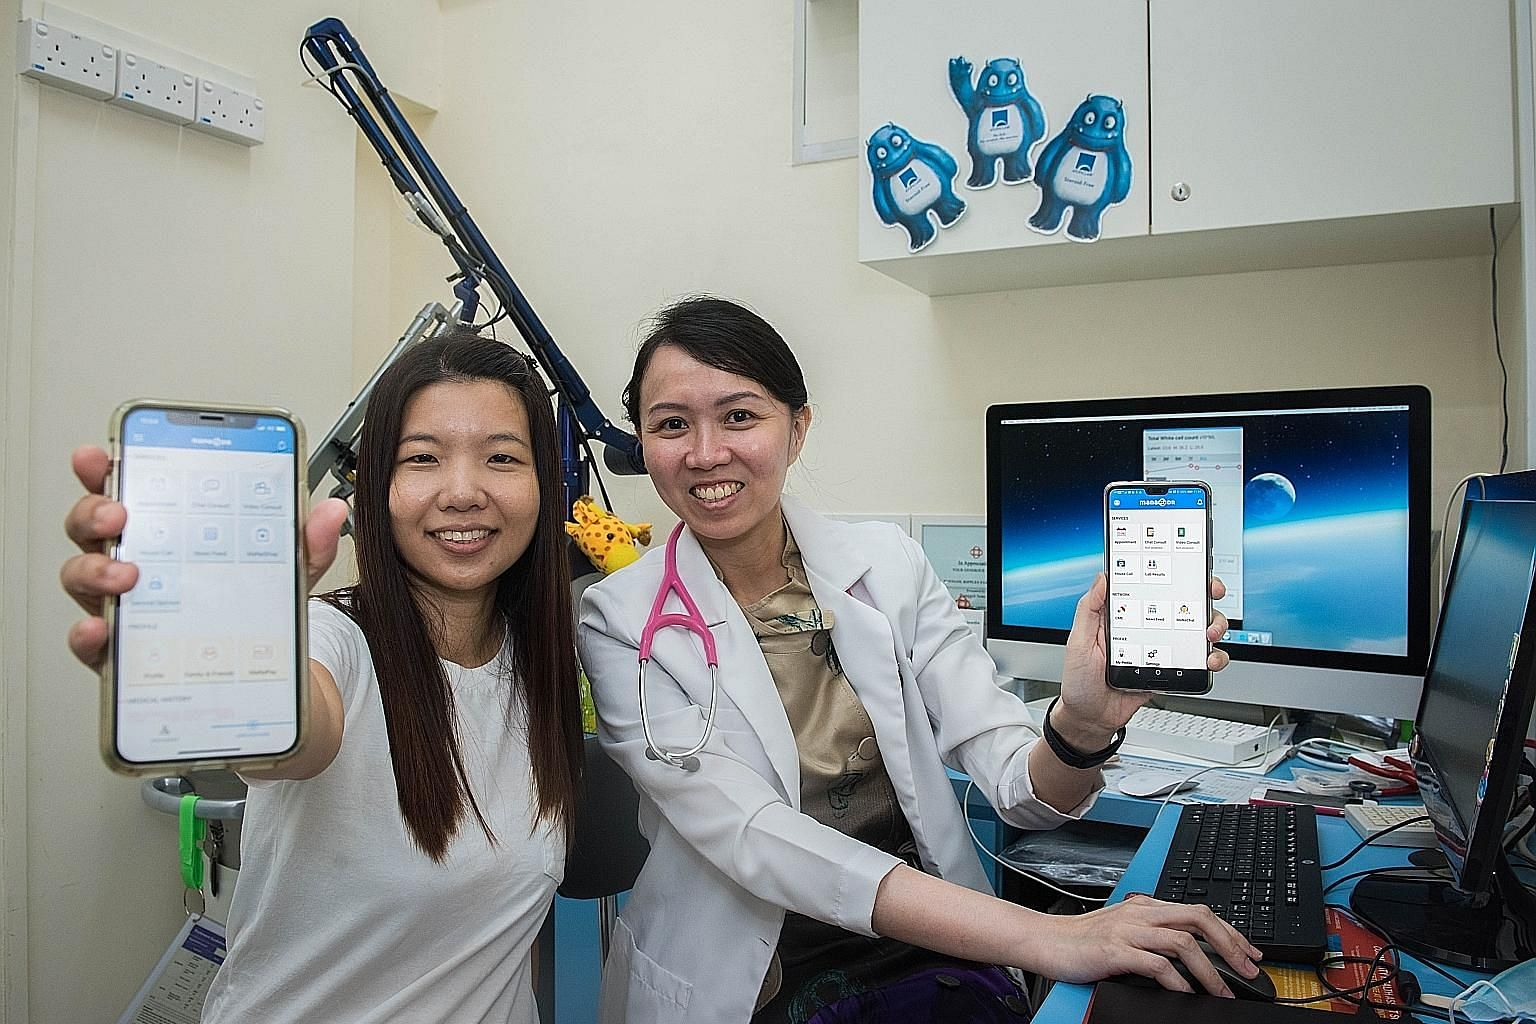 Dr Rachel Teoh (at right) and patient Ferlene Tan showing features of the MaNaDr app on their phones. The app is one of many offering more convenient access to doctors and pharmacists here.